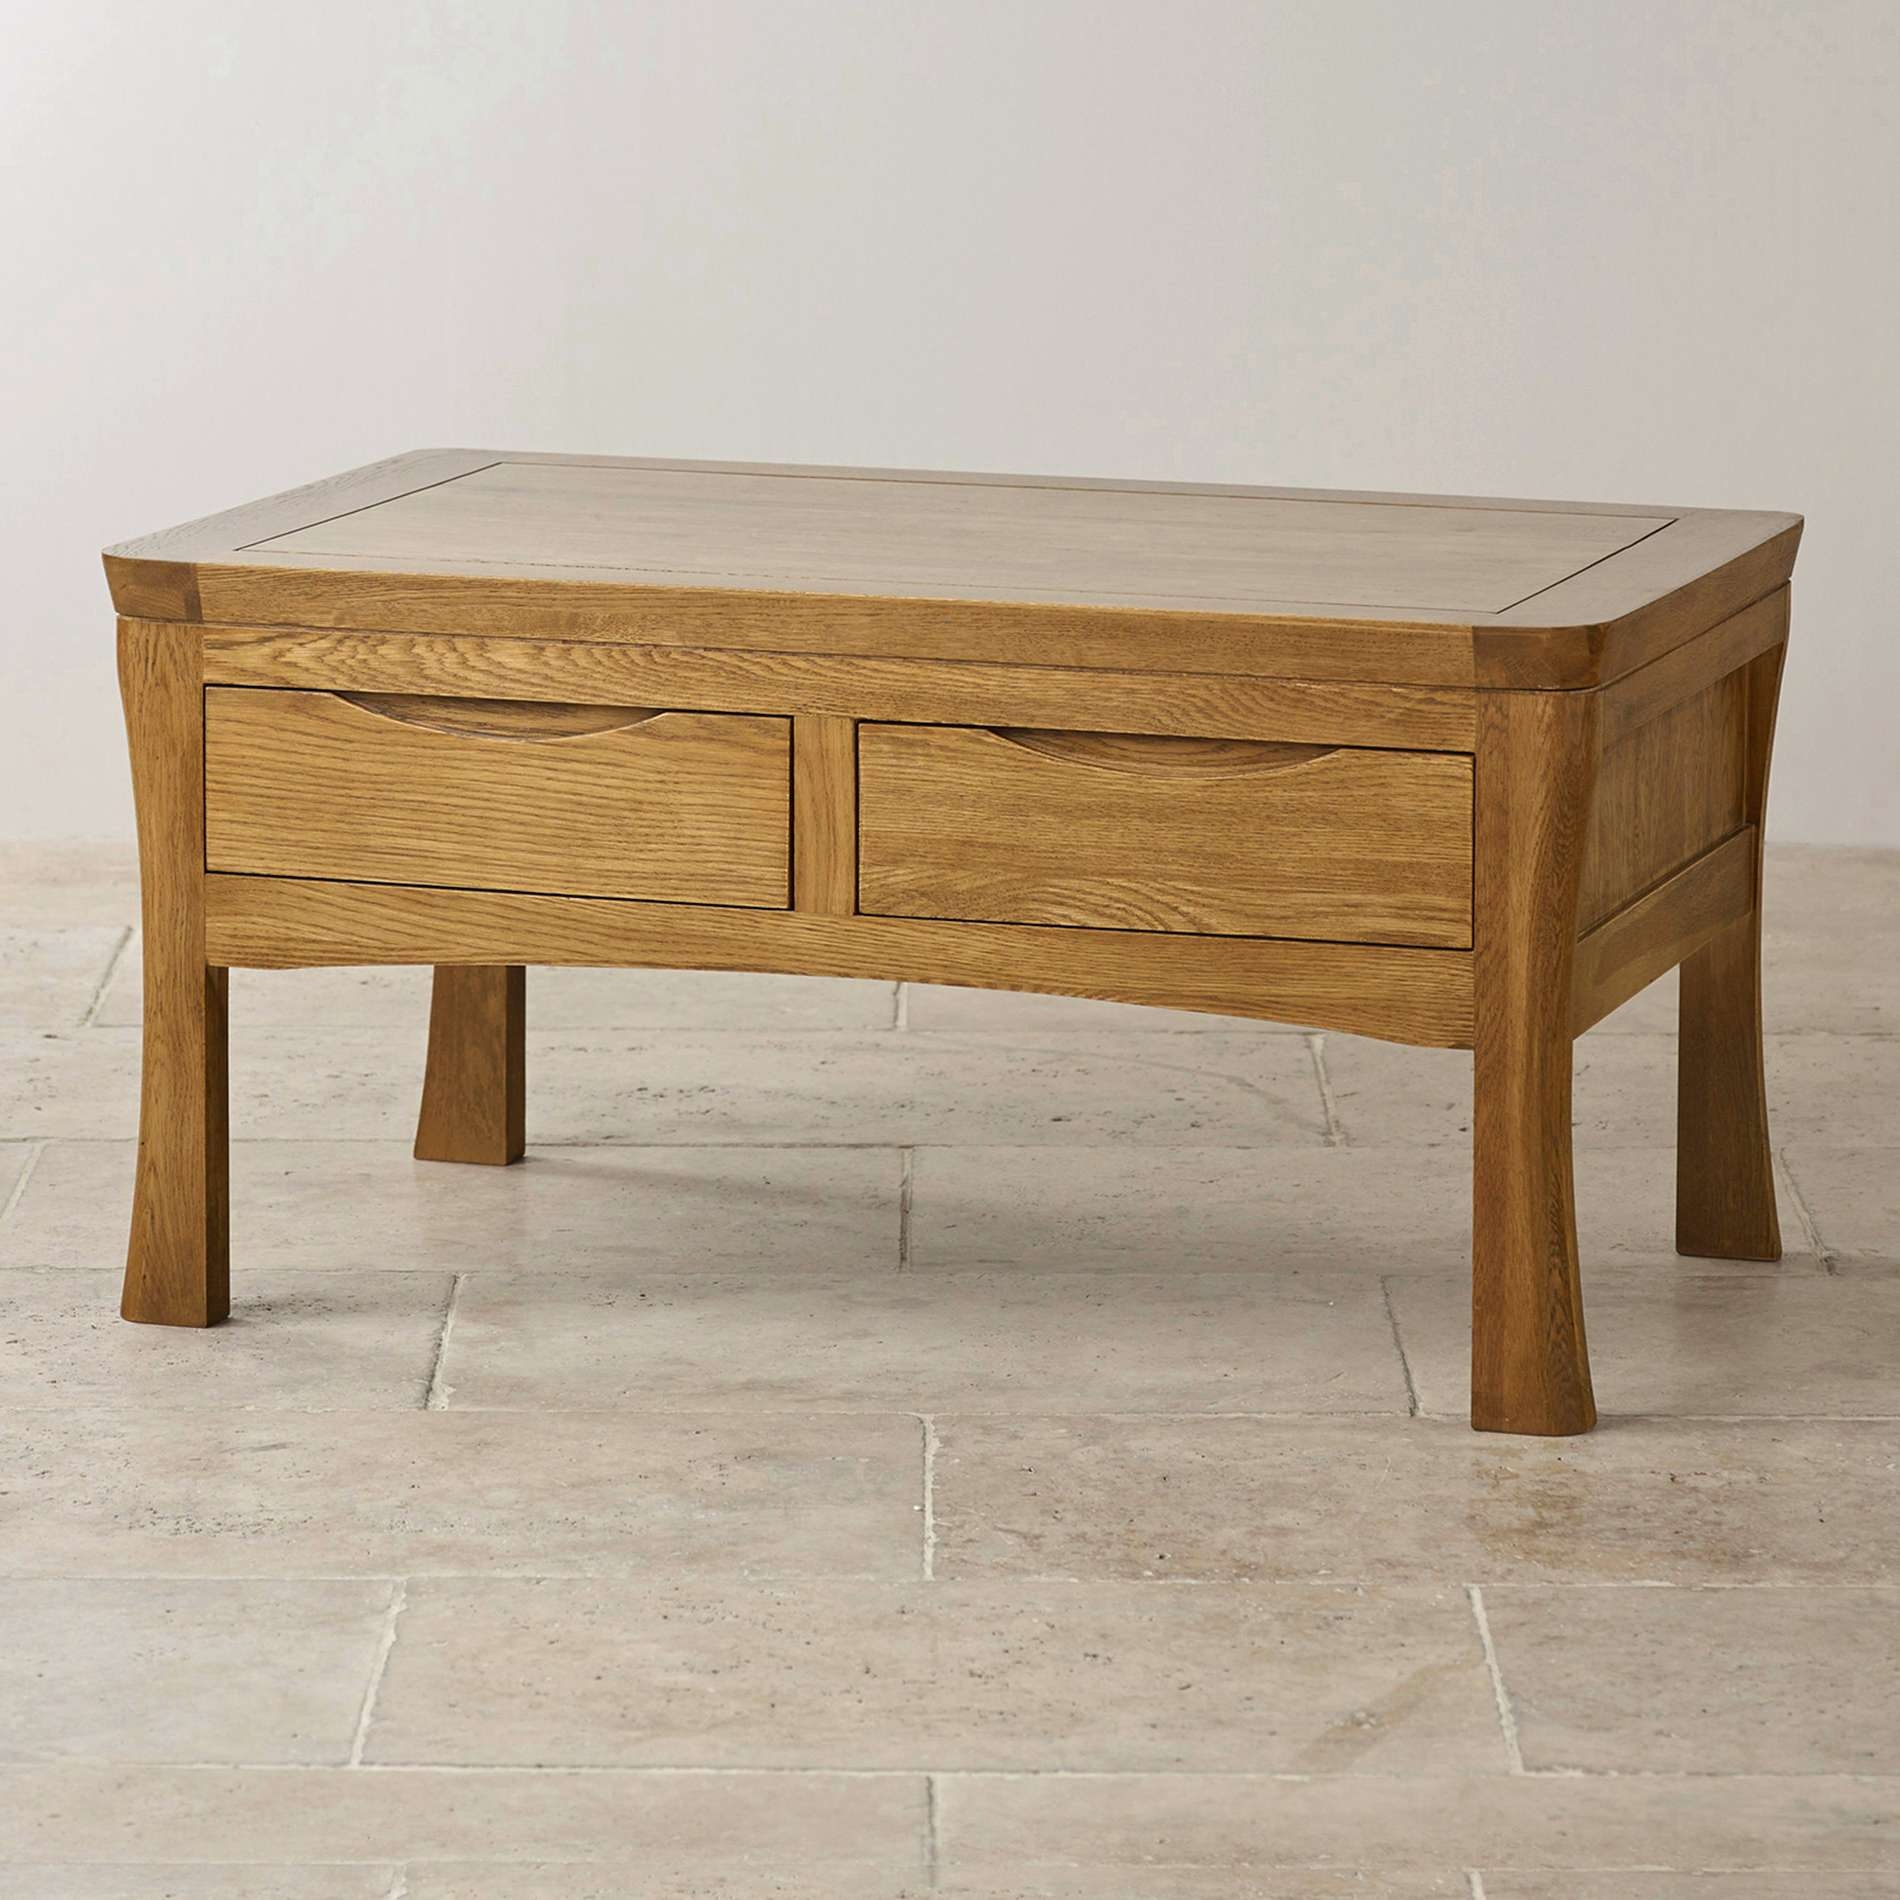 Well Known Solid Oak Coffee Table With Storage Intended For Coffee Tables : Solid Wood Coffee Table With Drawers And Shelf Oak (View 12 of 20)